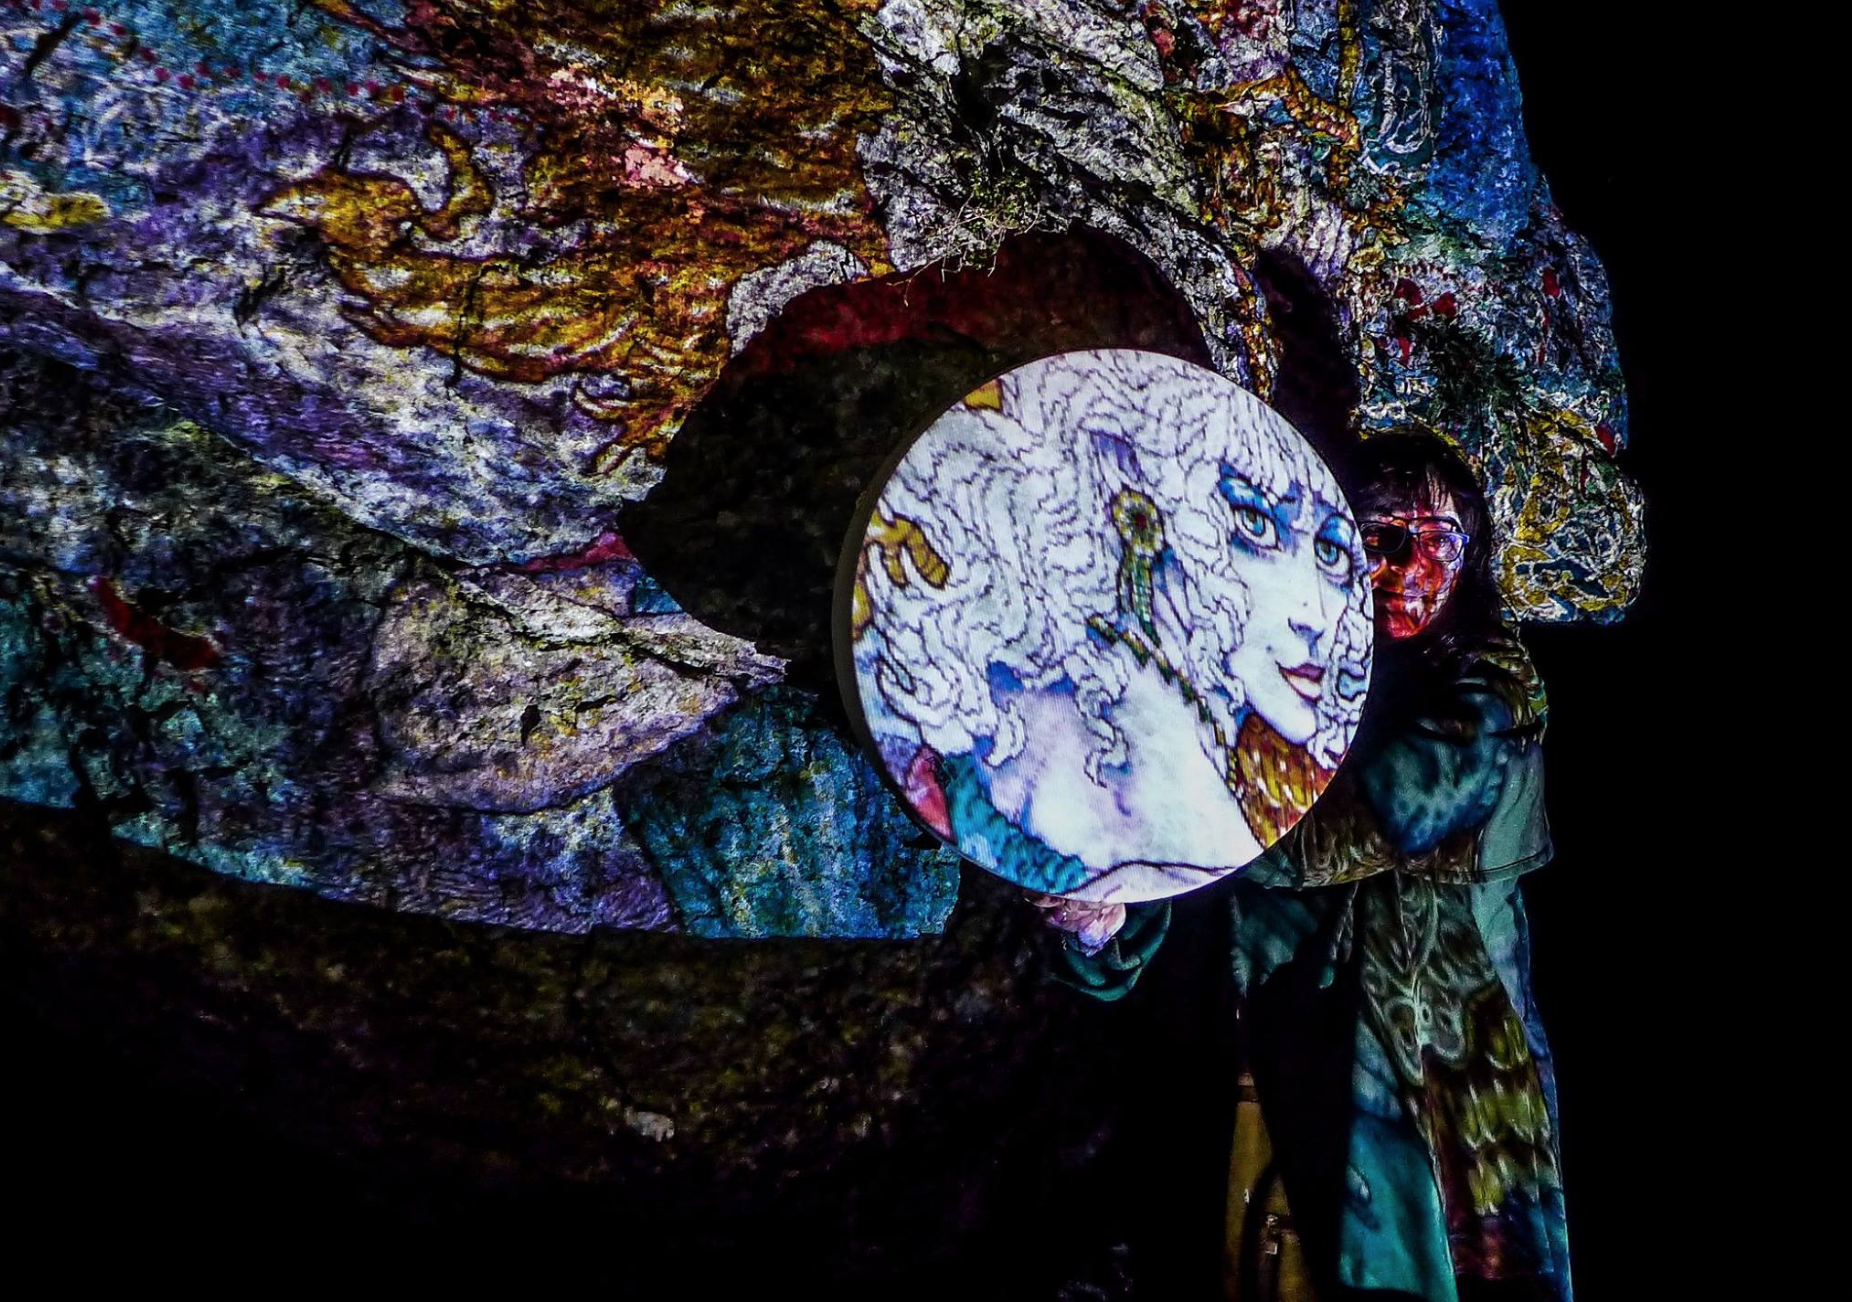 Ériu by Jim Fitzpatrick at the launch of the inaugural Herstory Light Festival in January 2017 on the Hill of Uisneach, Ancient Feminine Centre of Ireland. Photo by Kilian Kennedy.